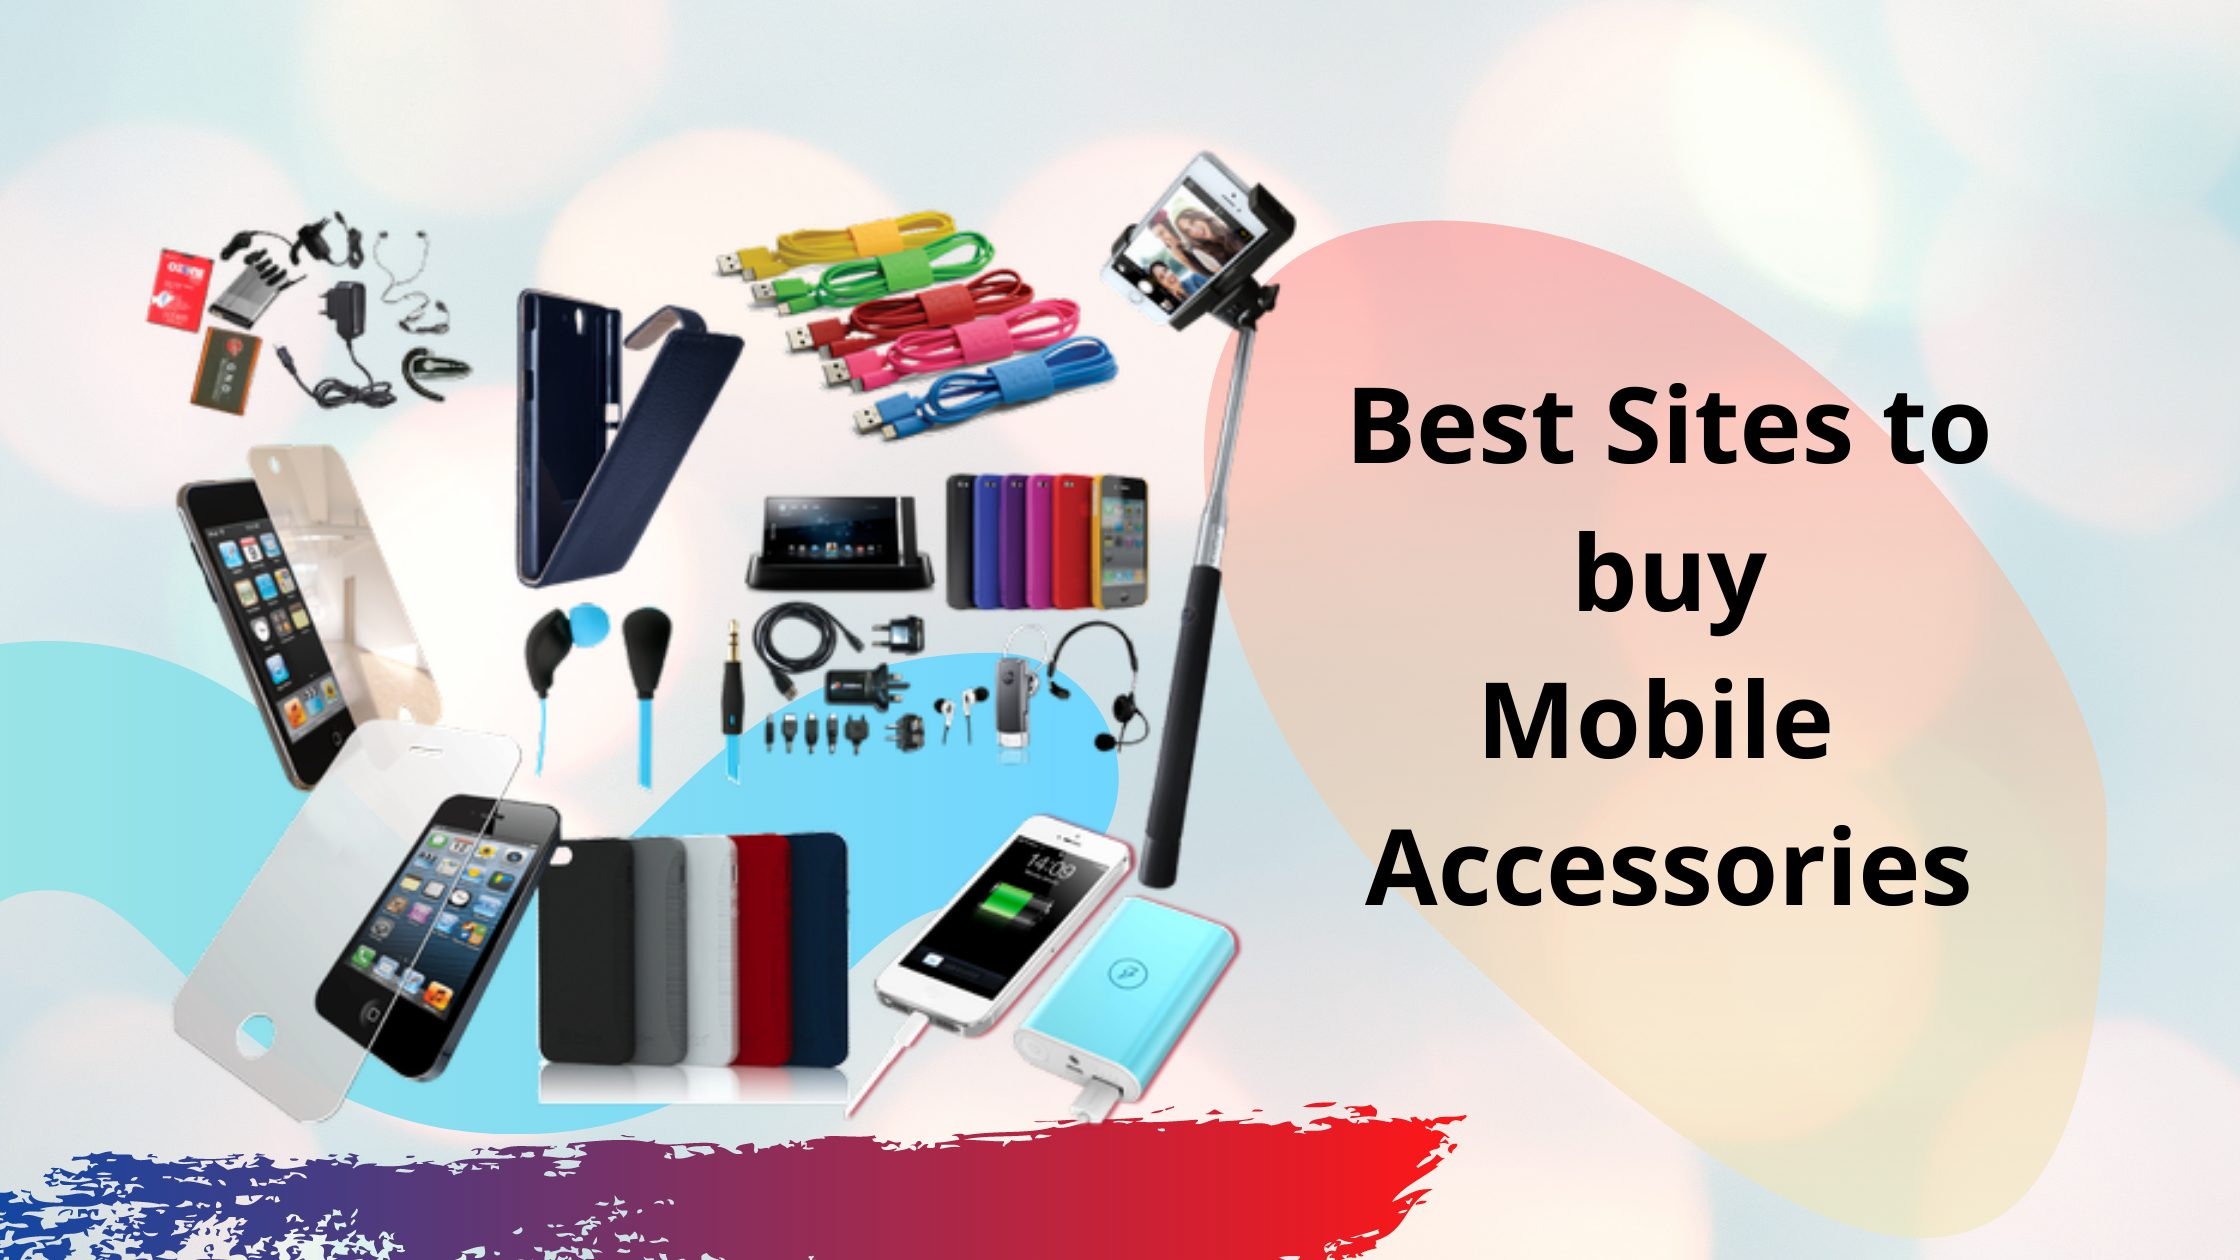 Mobile Accessories Sites